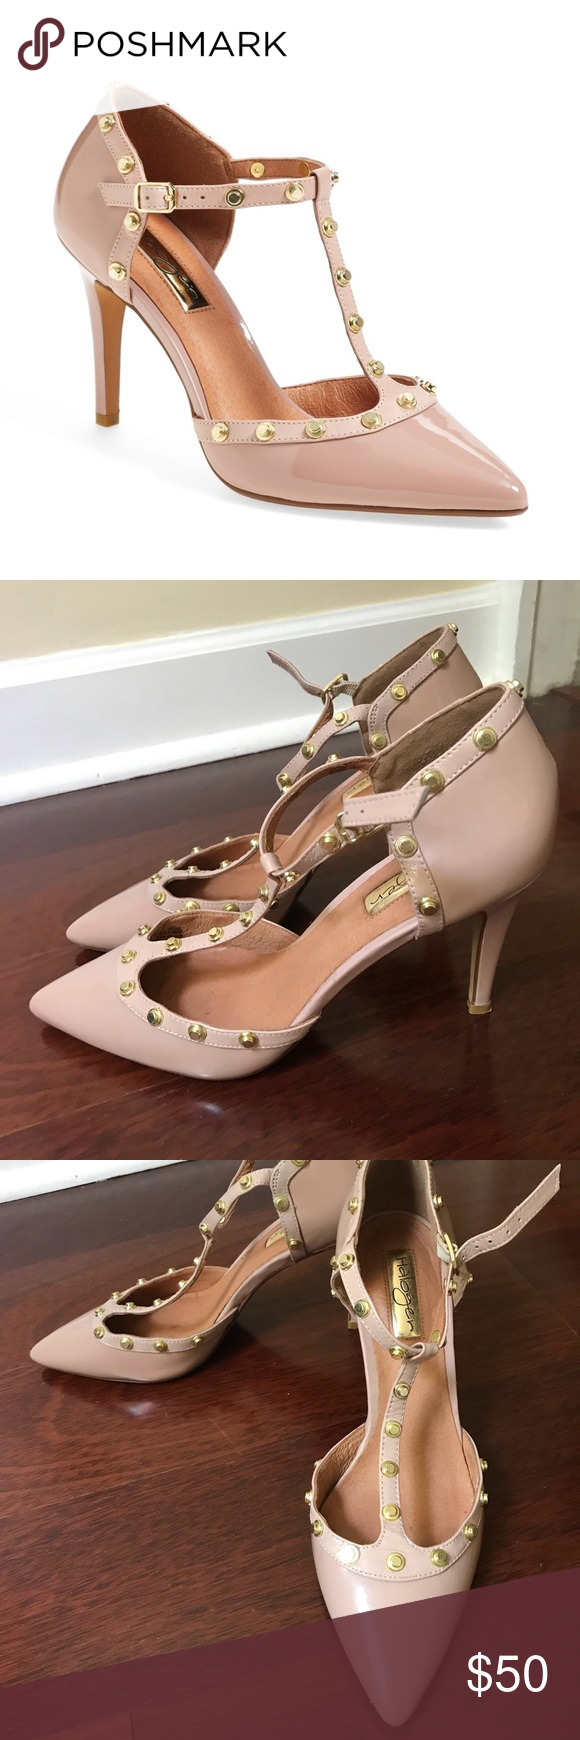 8a54f6bc2091 ❤️SALE❤ Halogen Martine Studded Heels 7.5 Nude 🚫 NO TRADES 🚫 📦 SHIPS